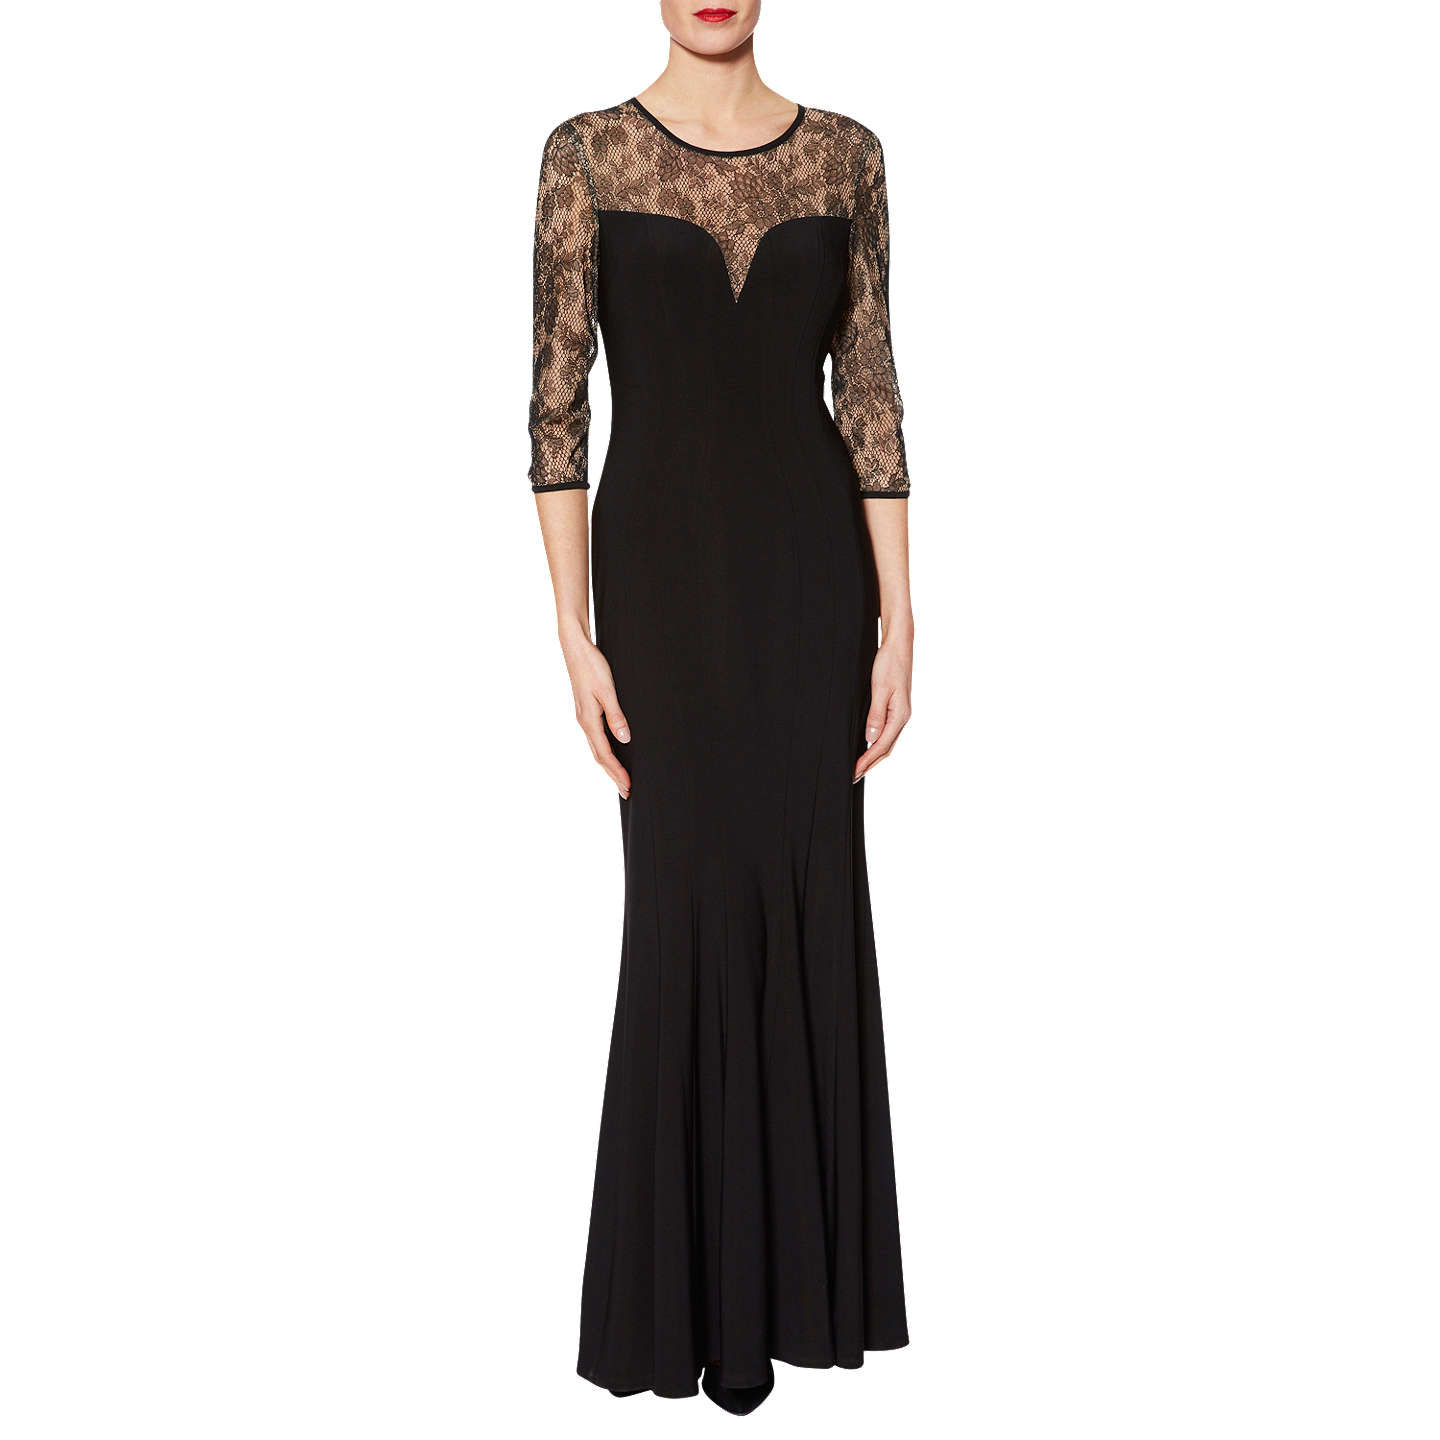 BuyGina Bacconi Mona Sweetheart Maxi Dress, Black, 12 Online at johnlewis.com